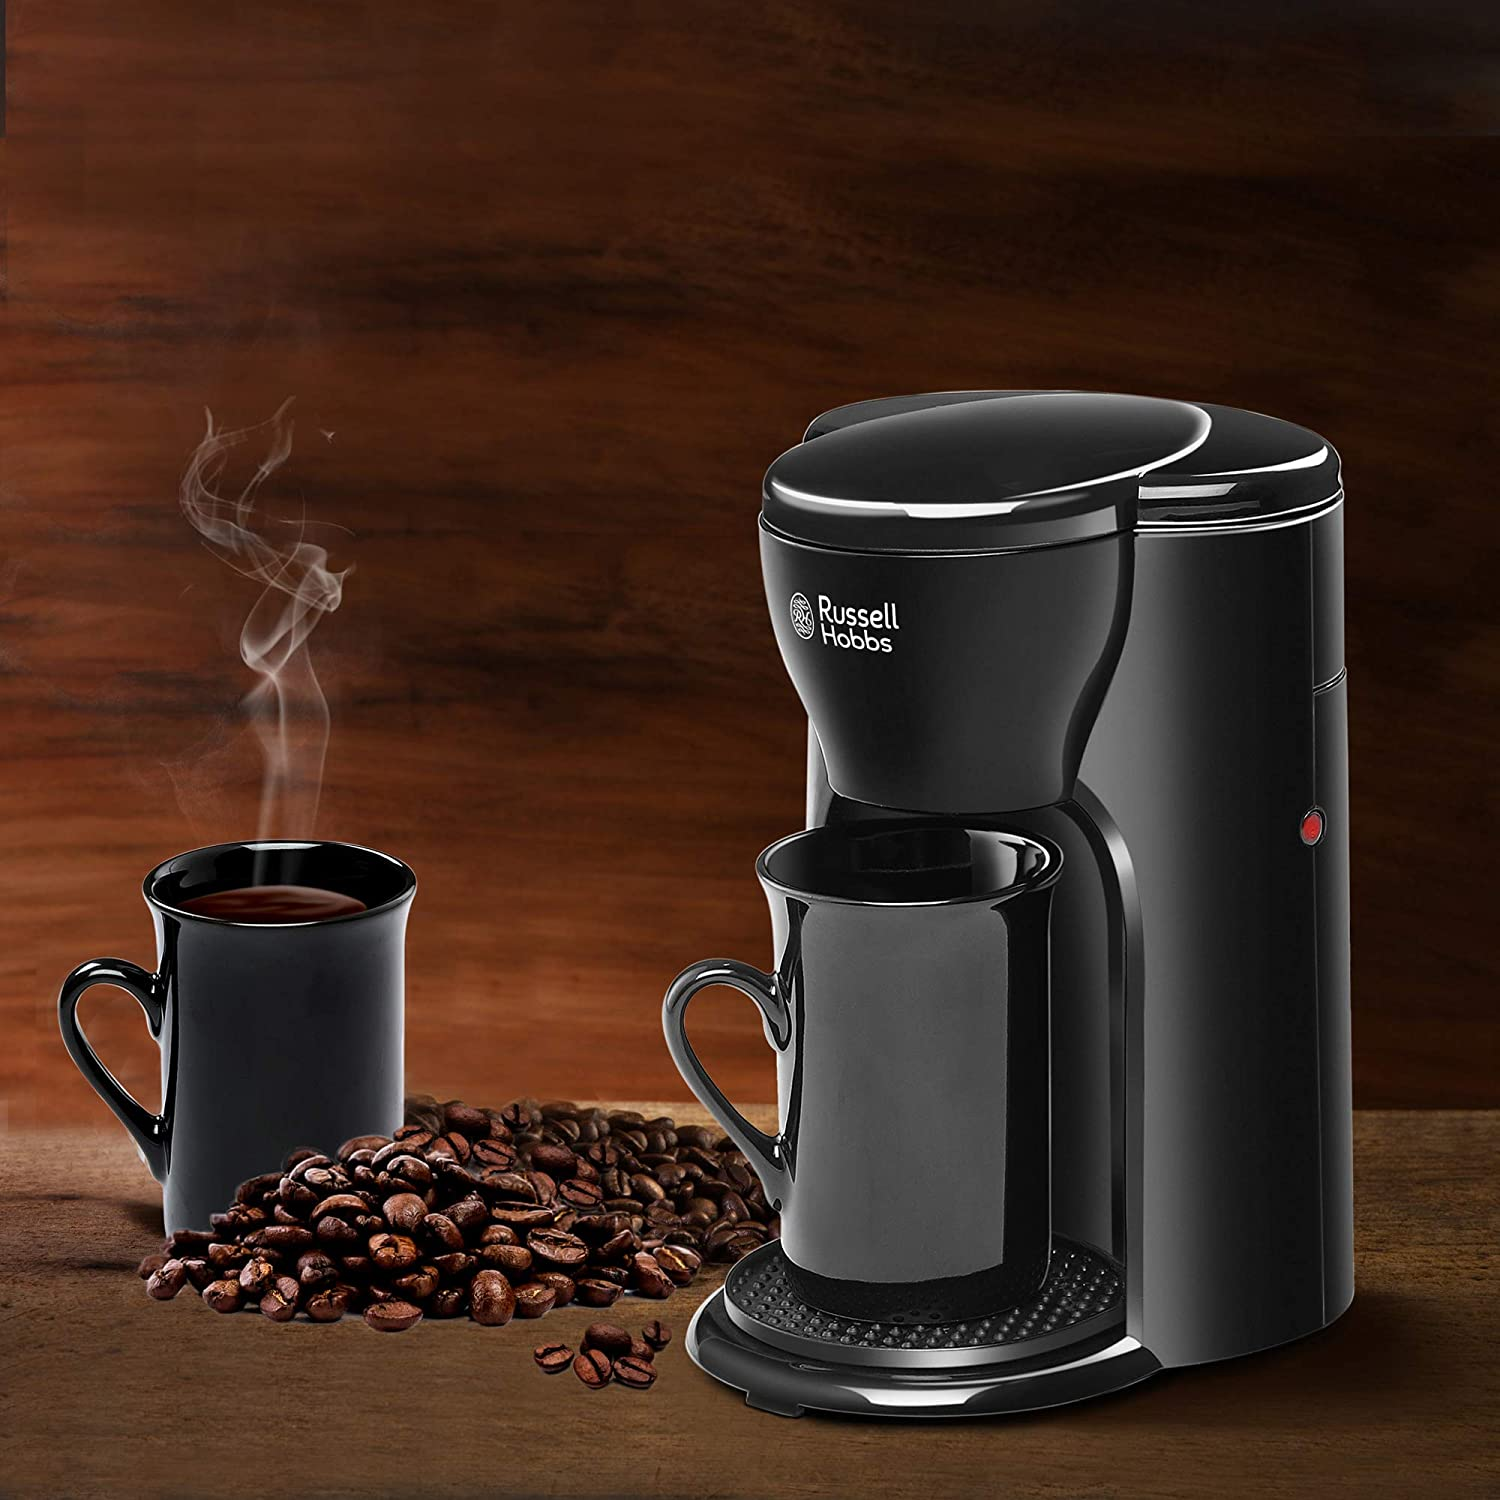 best coffee makers in india under 1500 INR